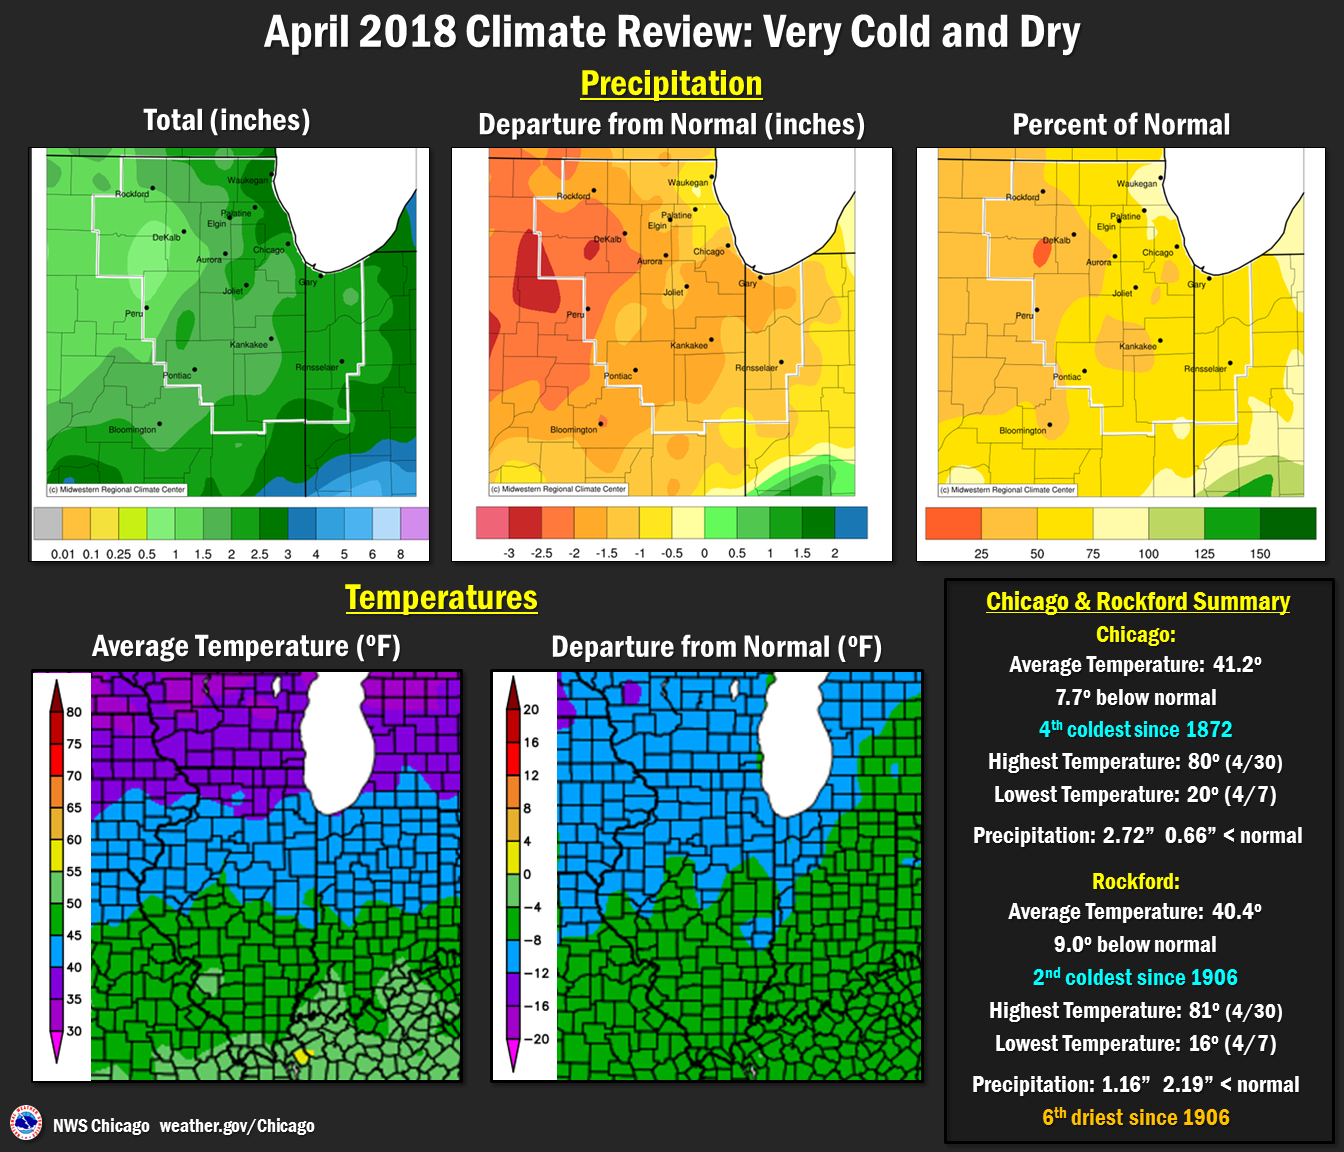 Climate Summary: Temperatures and Precip